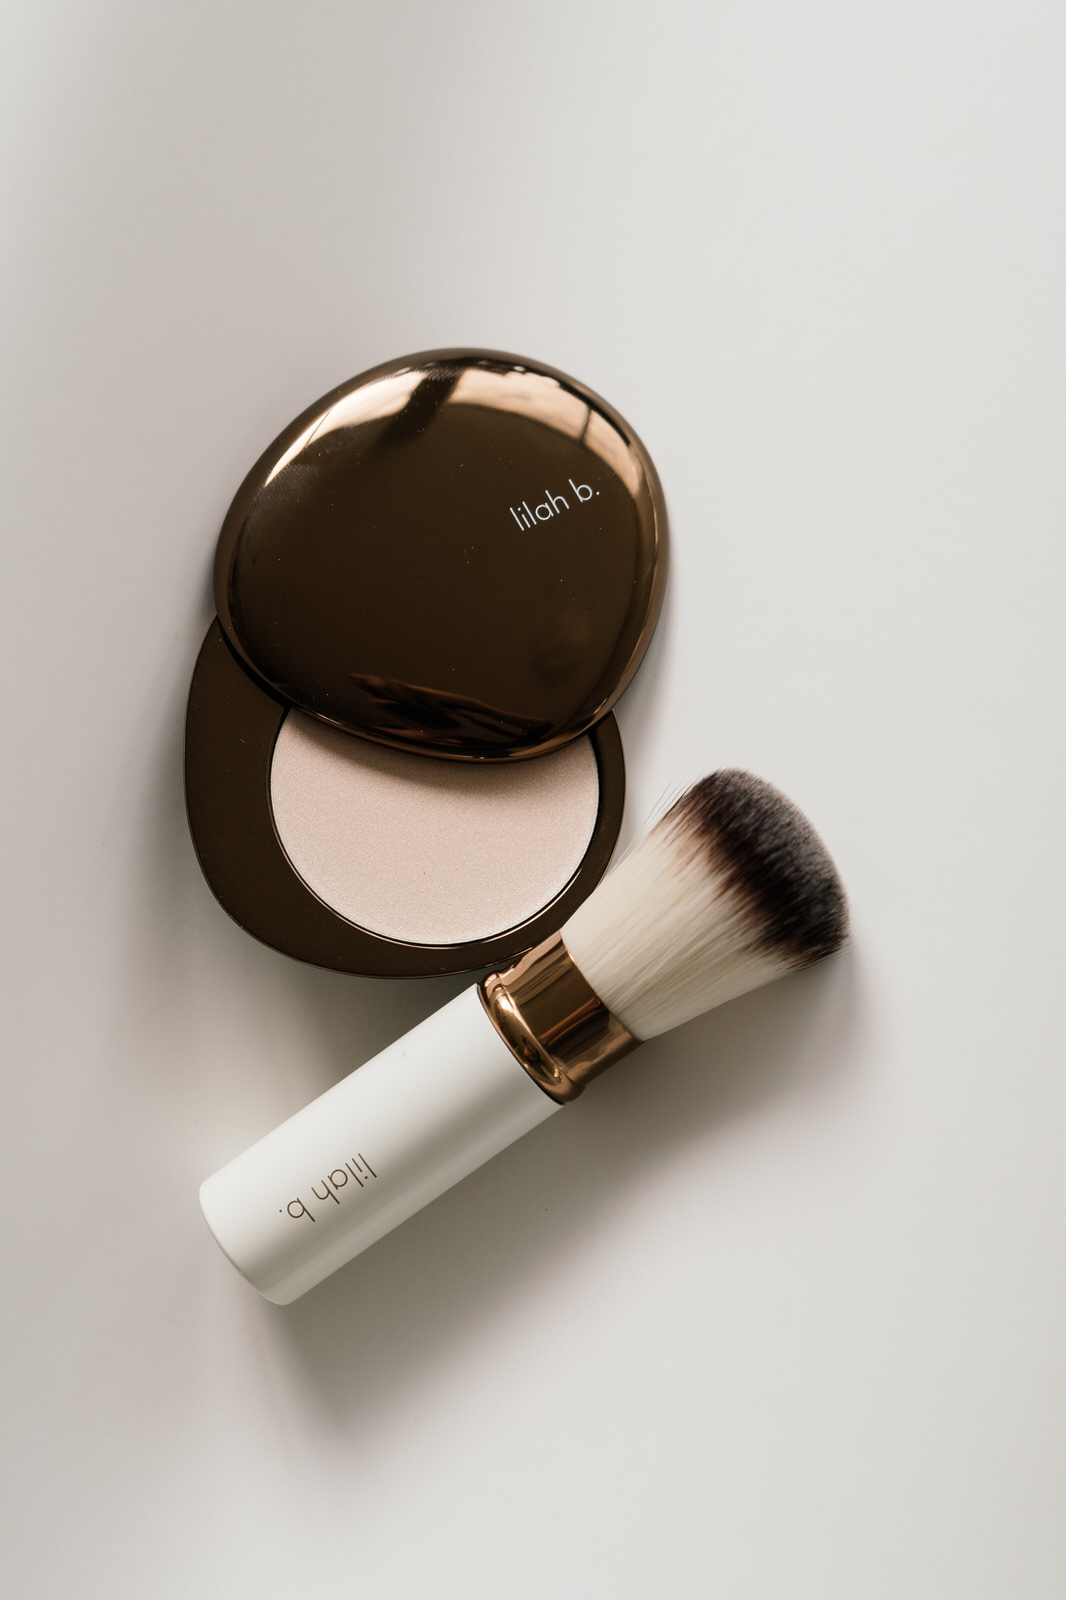 lilah b. Glisten + Glow™ Skin Illuminator and Retractable Bronzer Brush - There are so many wonderful ingredients in this range.Black Currant Seed Oil Extract and Sunflower Seed Oil, help to reduces inflammation and restores natural radiance, while Brown Sea Algae firms and hydrates to improve texture and tone.I sweep the Glisten + Glow™ Skin Illuminator along the brow bone, cheekbones and down the bridge of the nose for a shimmery finish. It is the only highlighter that is in my makeup bag right now.—I love the fluffy bristles of the vegan-friendly Retractable Bronzer Brush. It glides out smoothly of the sleek, compact case when you remove the cap. Perfect for on the go touch ups!